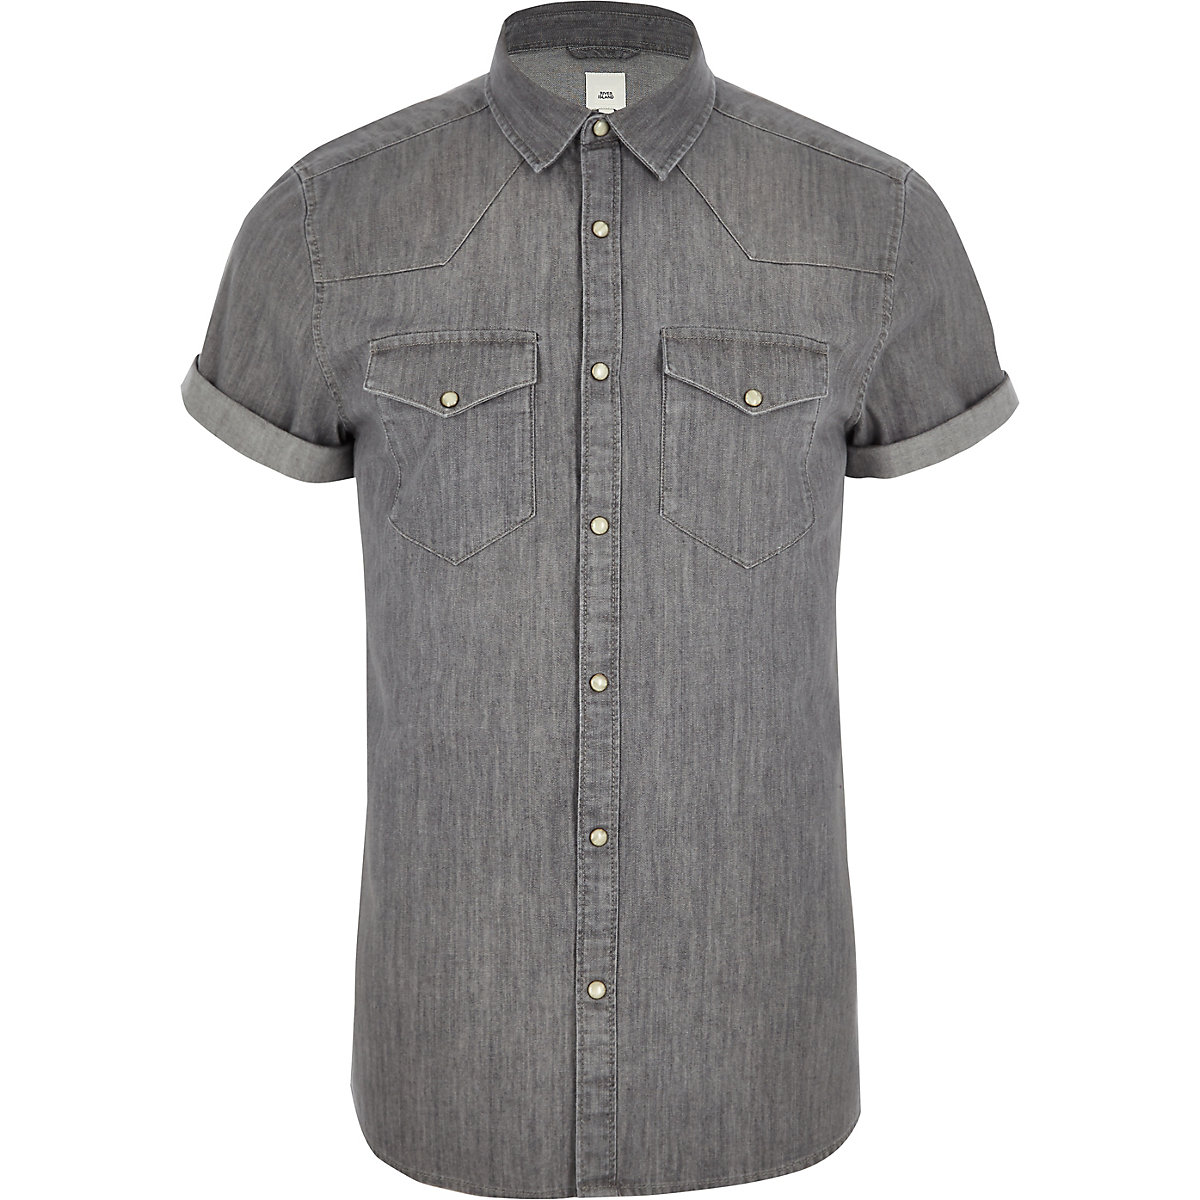 Grey western style slim fit denim shirt